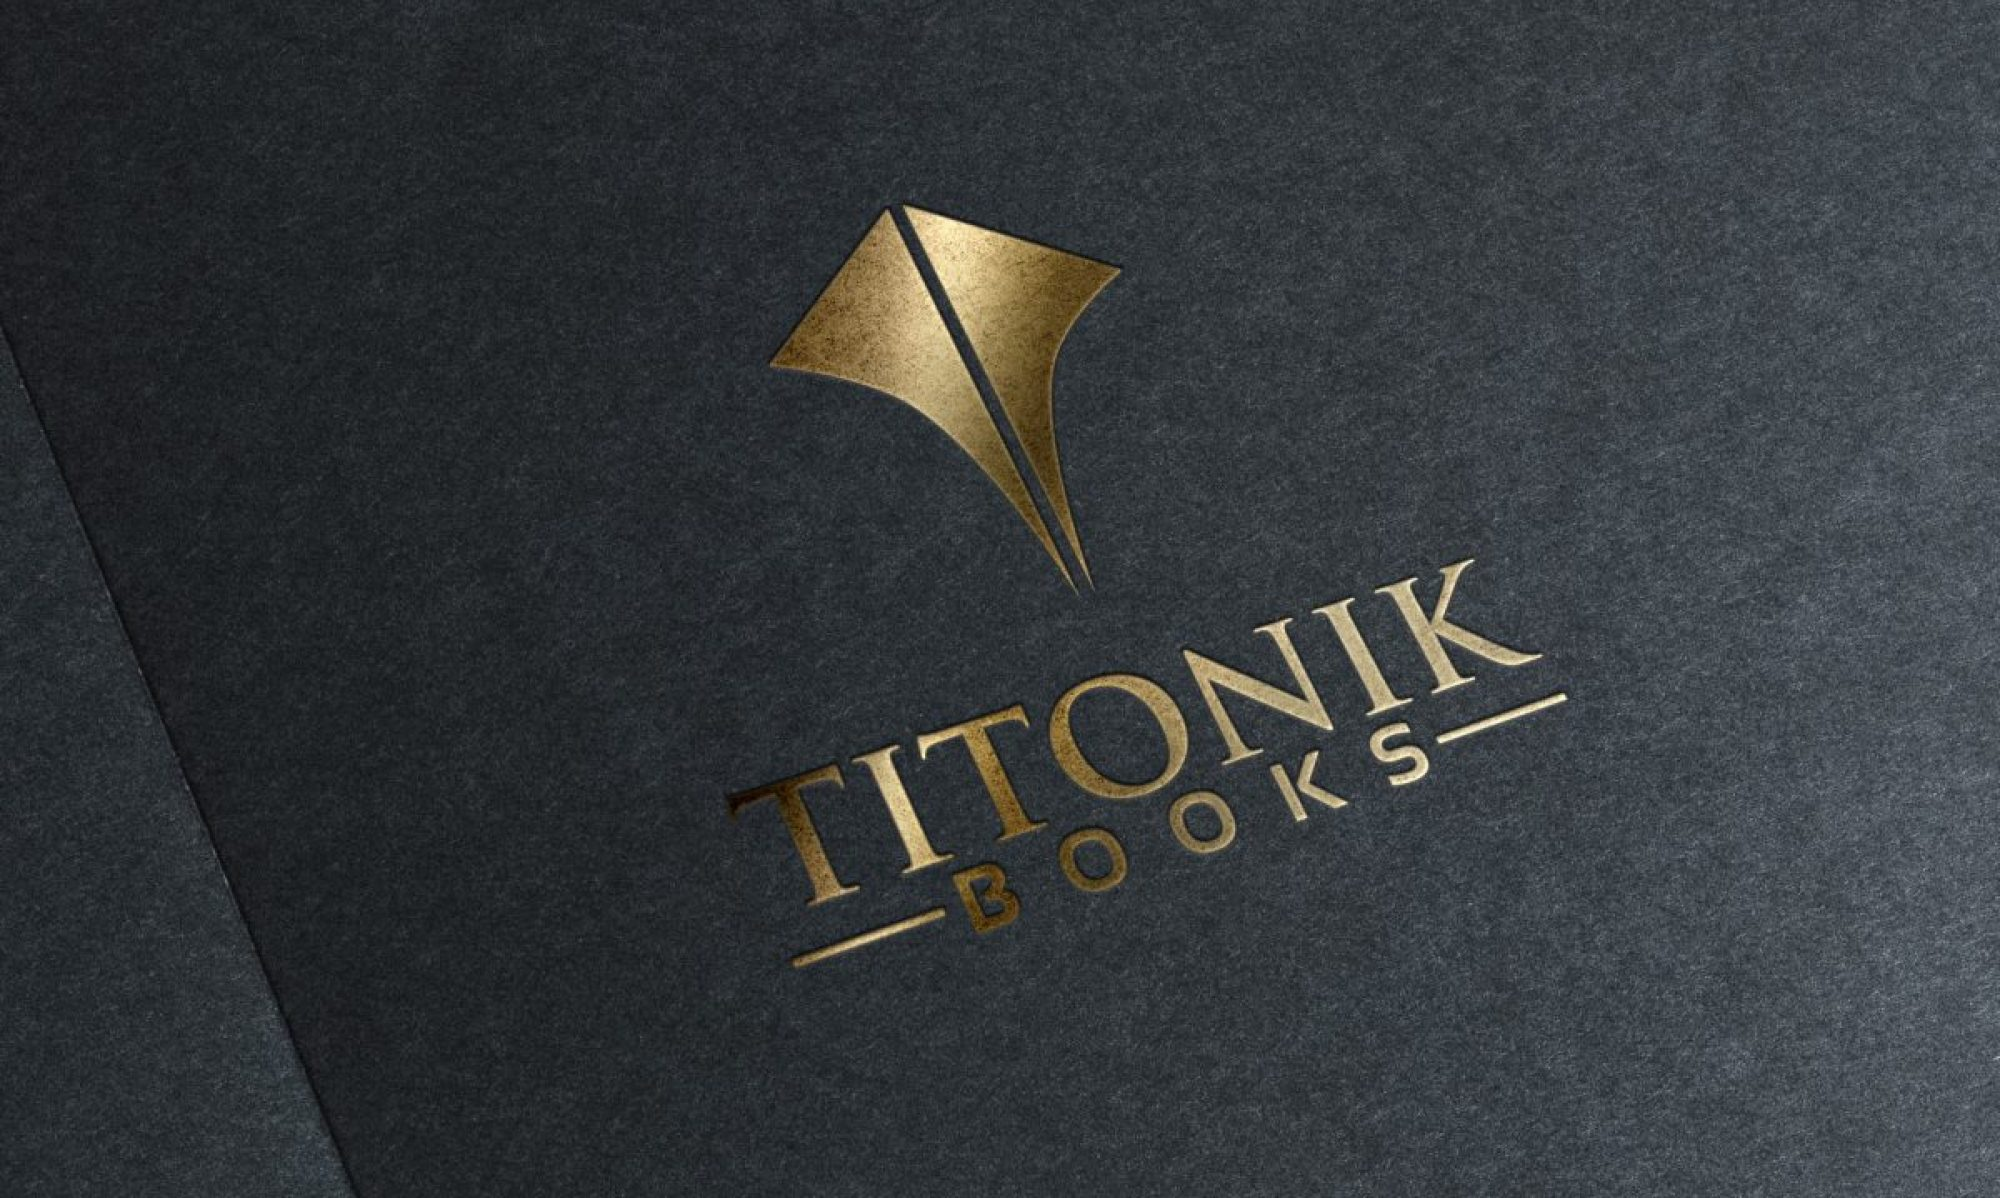 Titonik Books